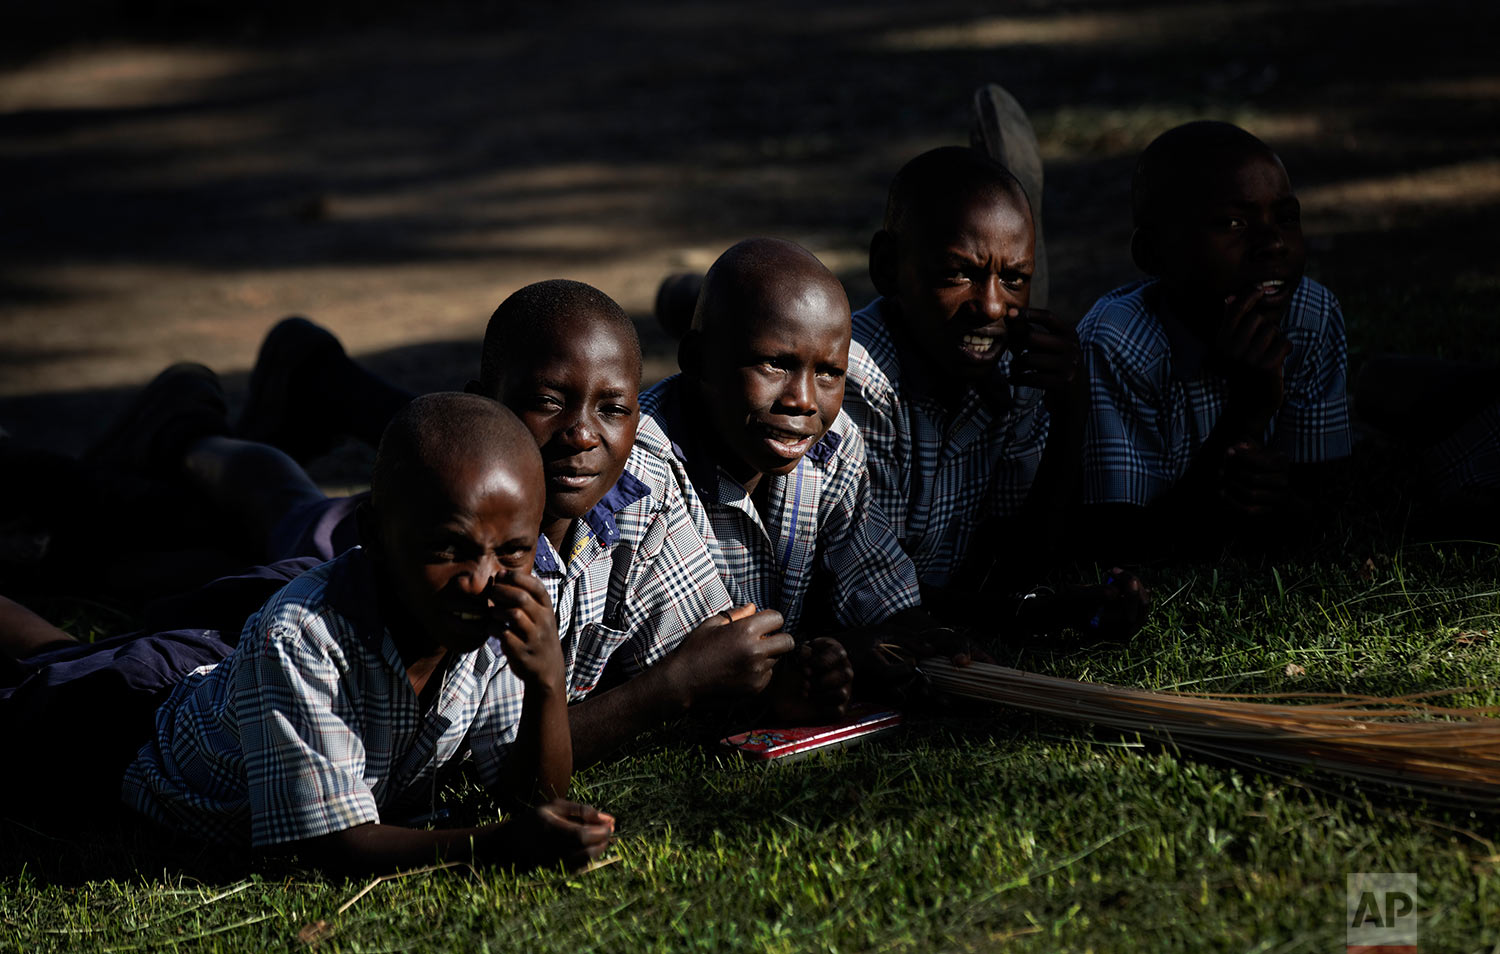 In this Wednesday, May 31, 2017 photo, children lie on the grass during break at the Side-By-Side Boetheo School, which assists mostly orphans who were previously out of school but now receive scholarship aid from a donor if they satisfy criteria such as having a birth certificate, in Rakai, Uganda. (AP Photo/Ben Curtis)